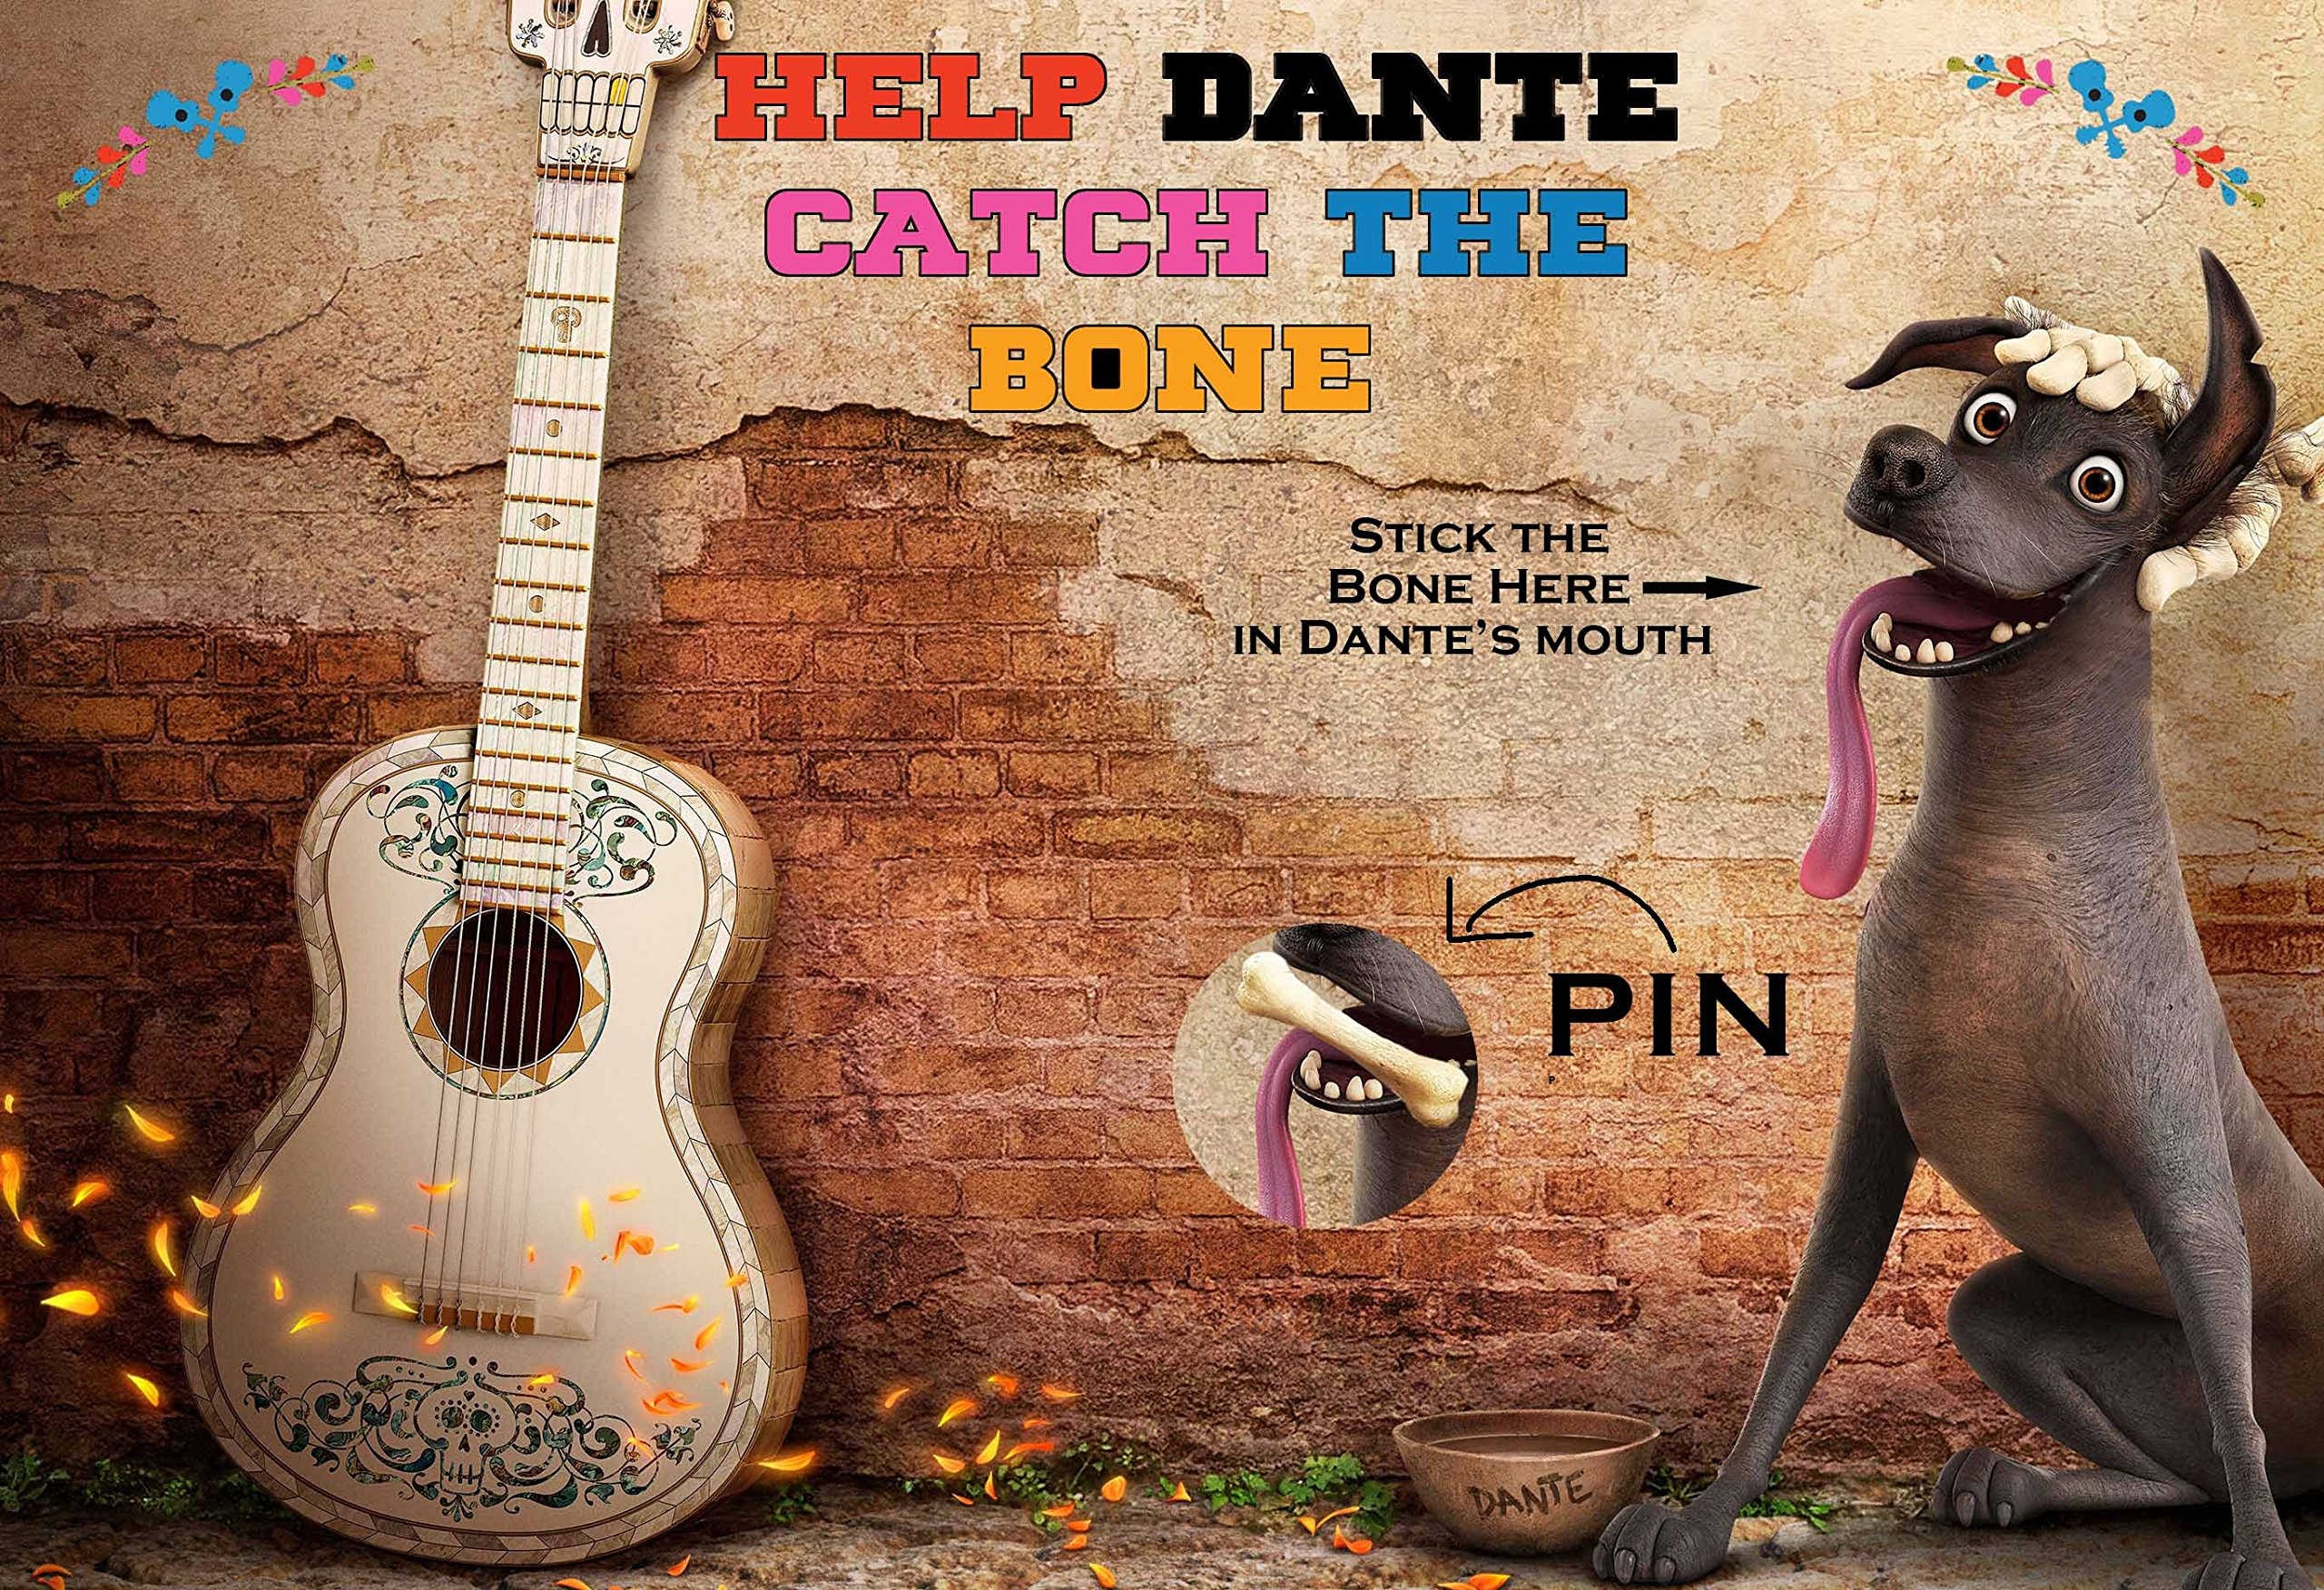 SGG Coco Movie Themed Party Supplies Game - Help Dante Catch the Bone